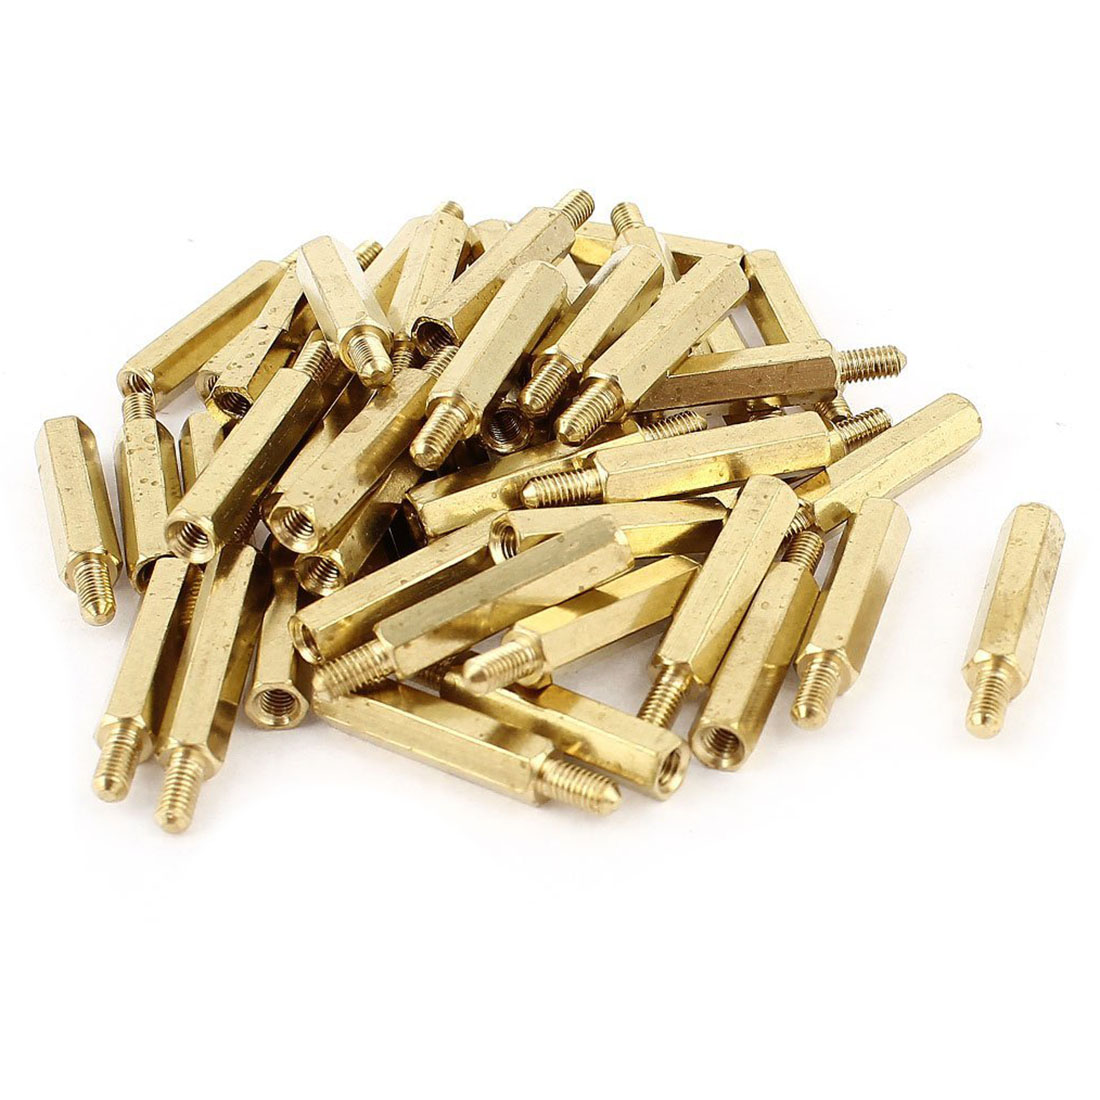 ELEG-50 Pcs <font><b>M3</b></font> 3mm Male Female Brass PCB Spacer Hex Stand-Off Pillar <font><b>20mm</b></font> image